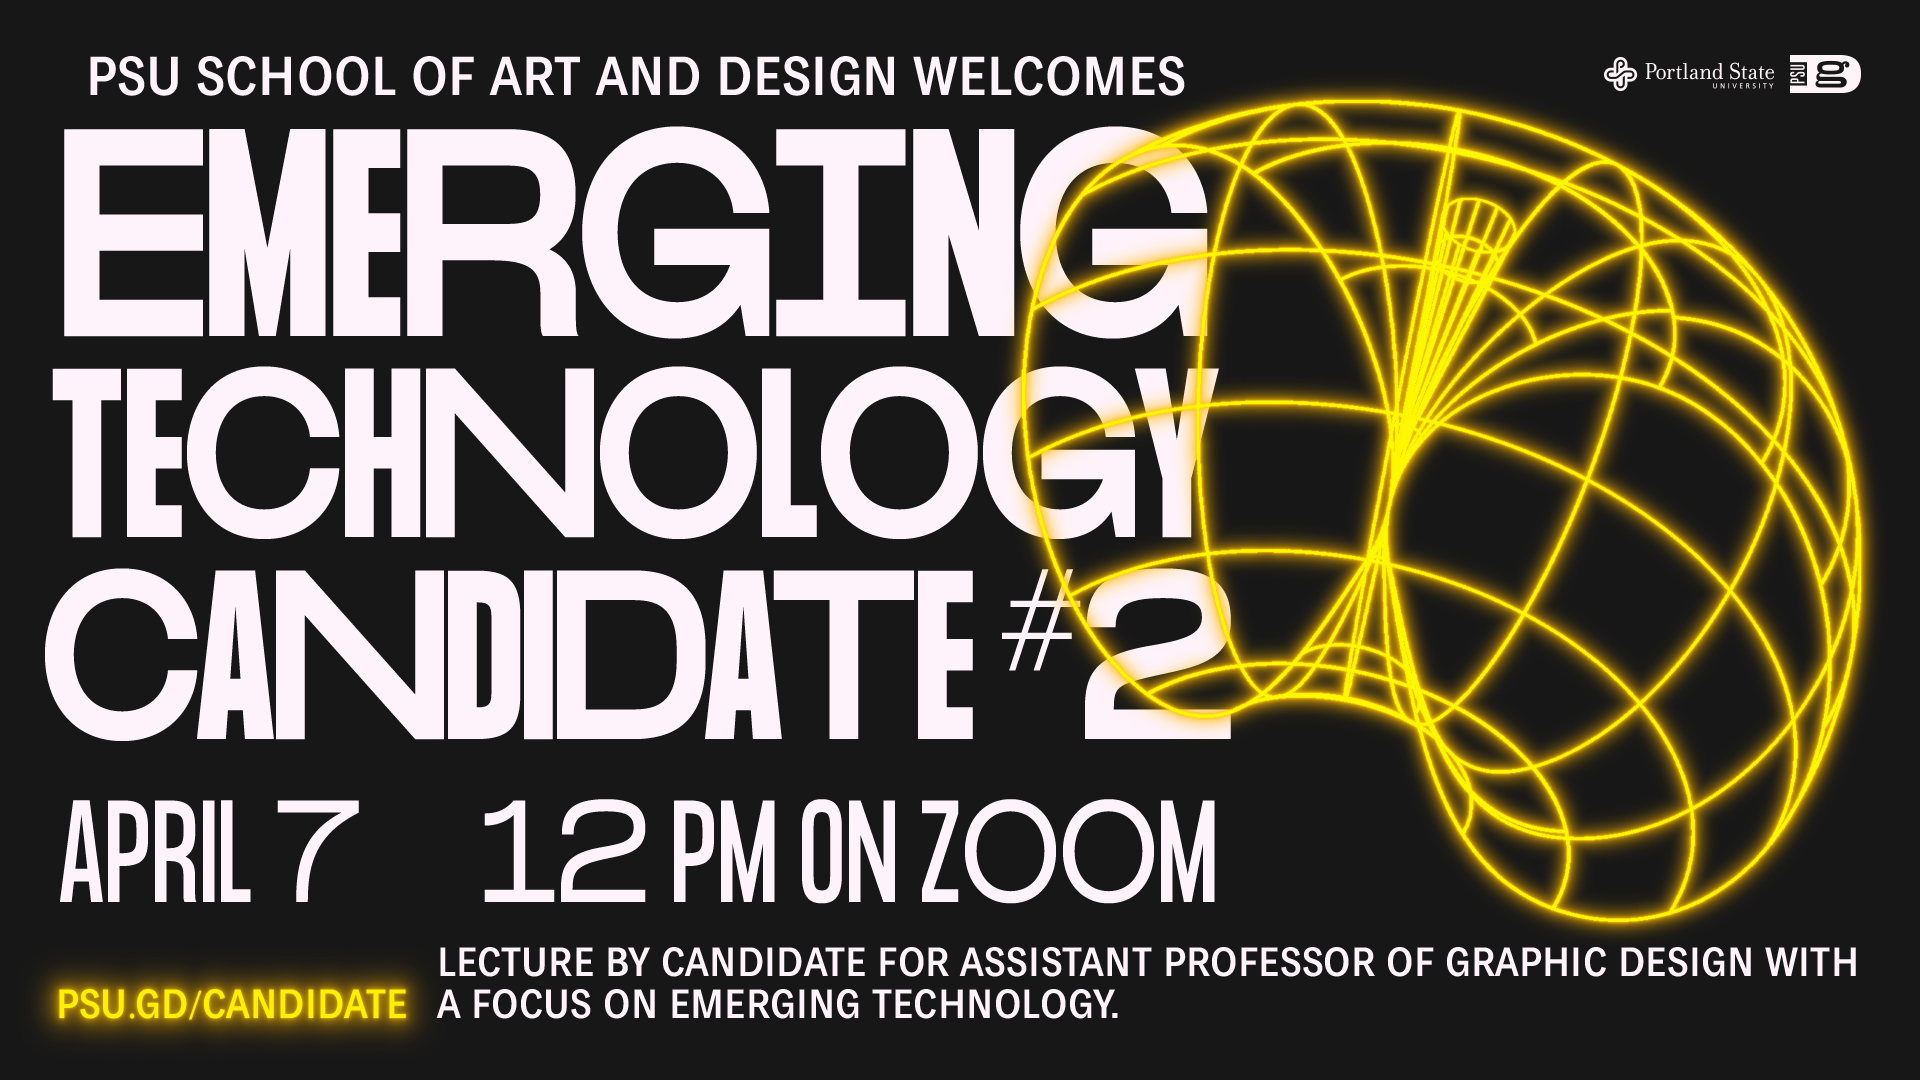 PSU School of Art and Design welcomes Emerging Technology Candidate #2: April 7, 12PM on Zoom. psu.gd/candidate